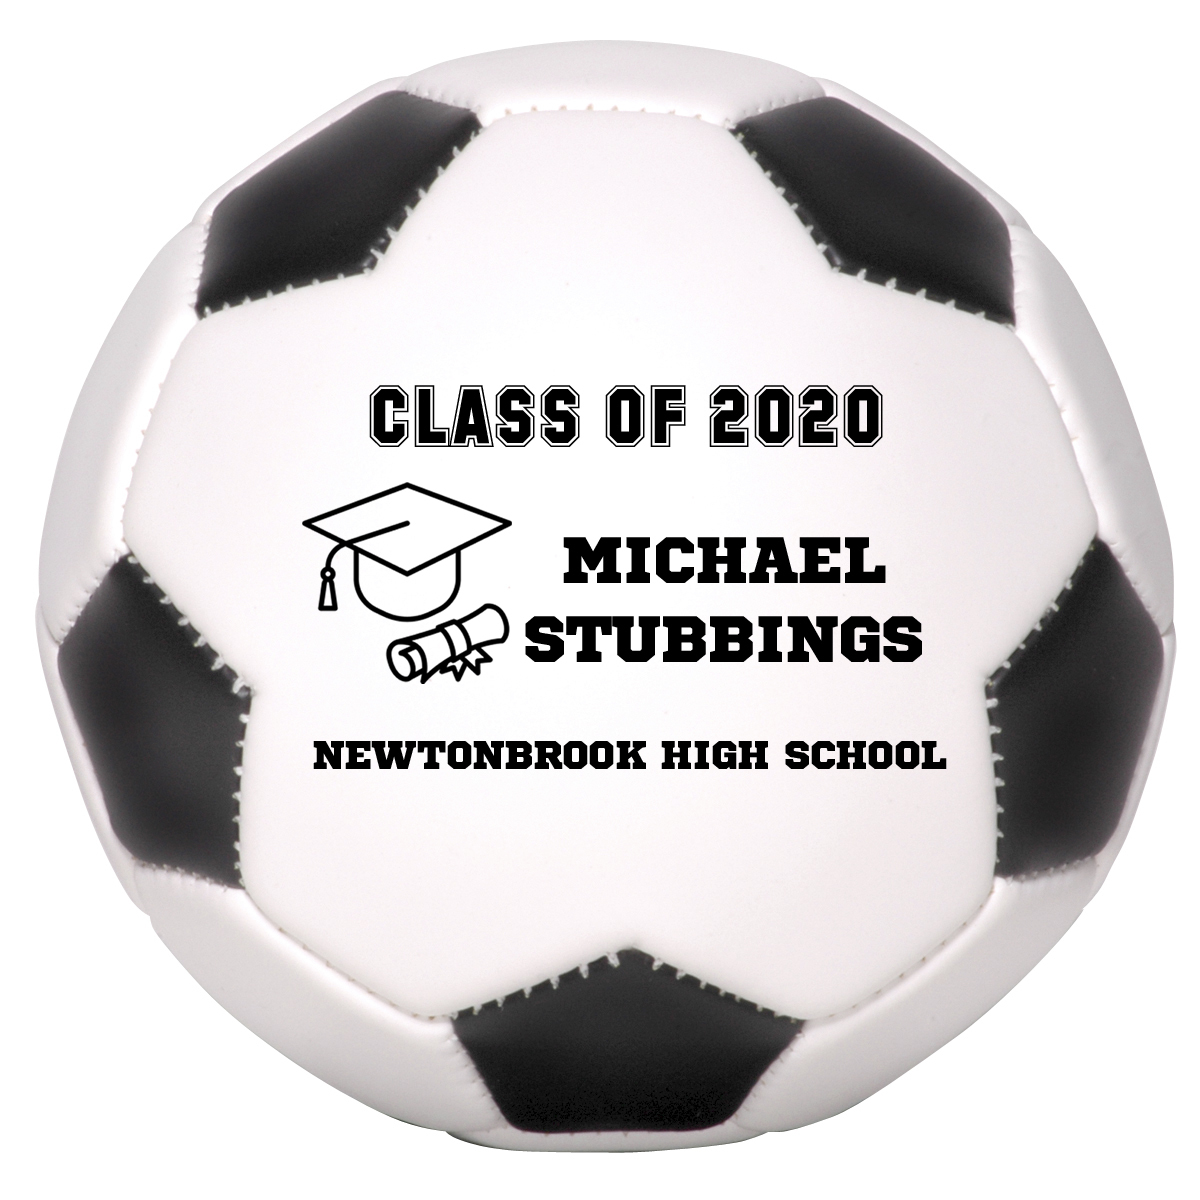 Primary image for Personalized Custom Class of 2020 Graduation Mini Soccer Ball Gift Black Text